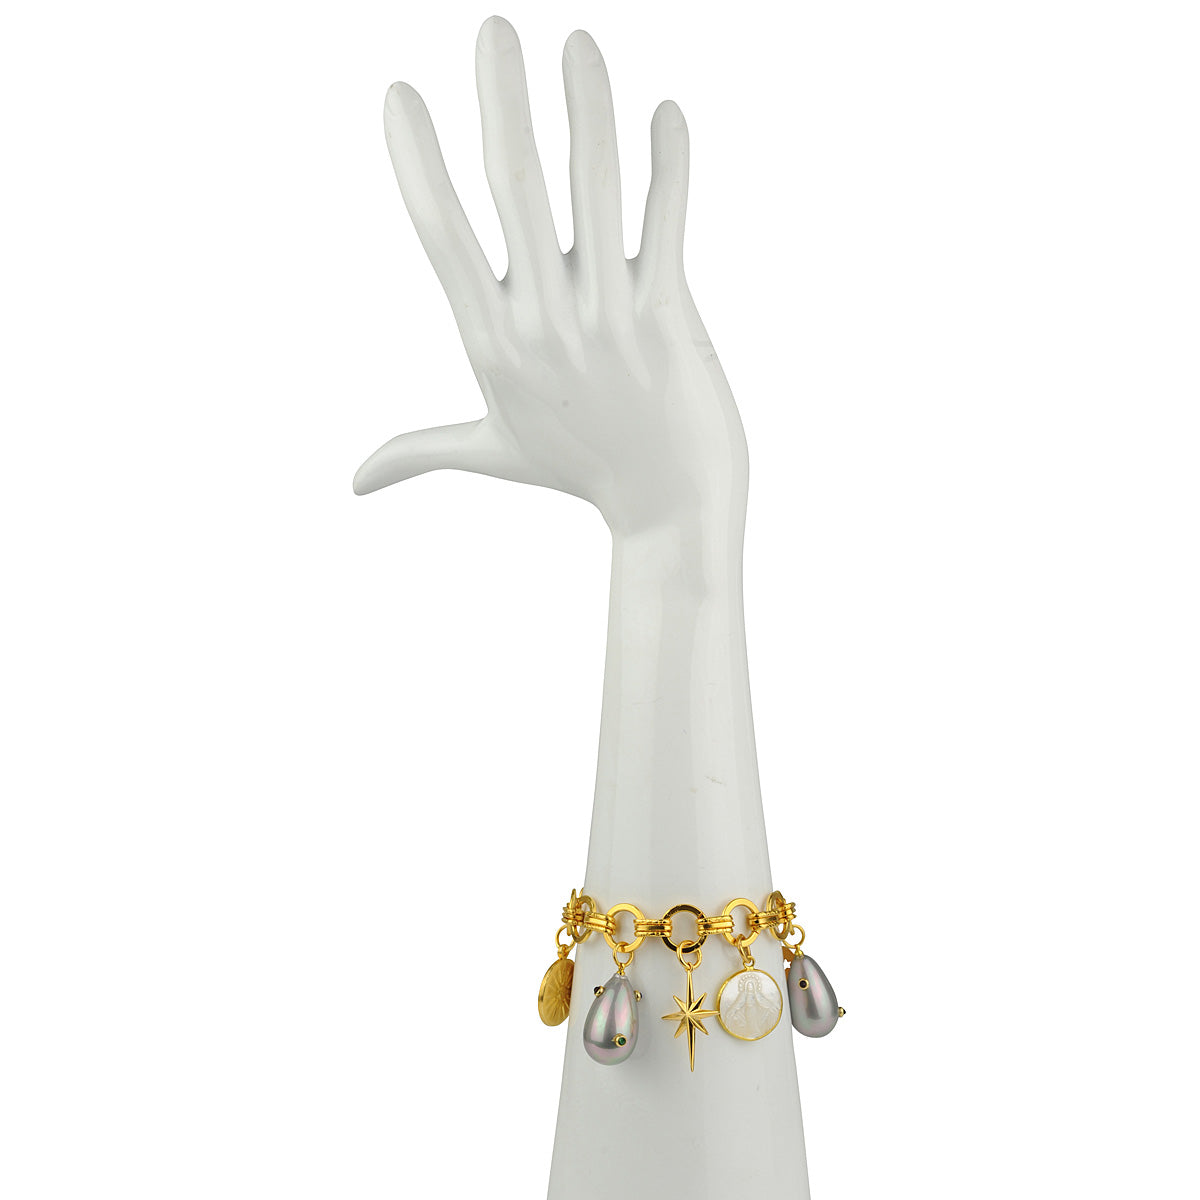 Bracelet with Various Charms and a Pearl Drop katerina psoma